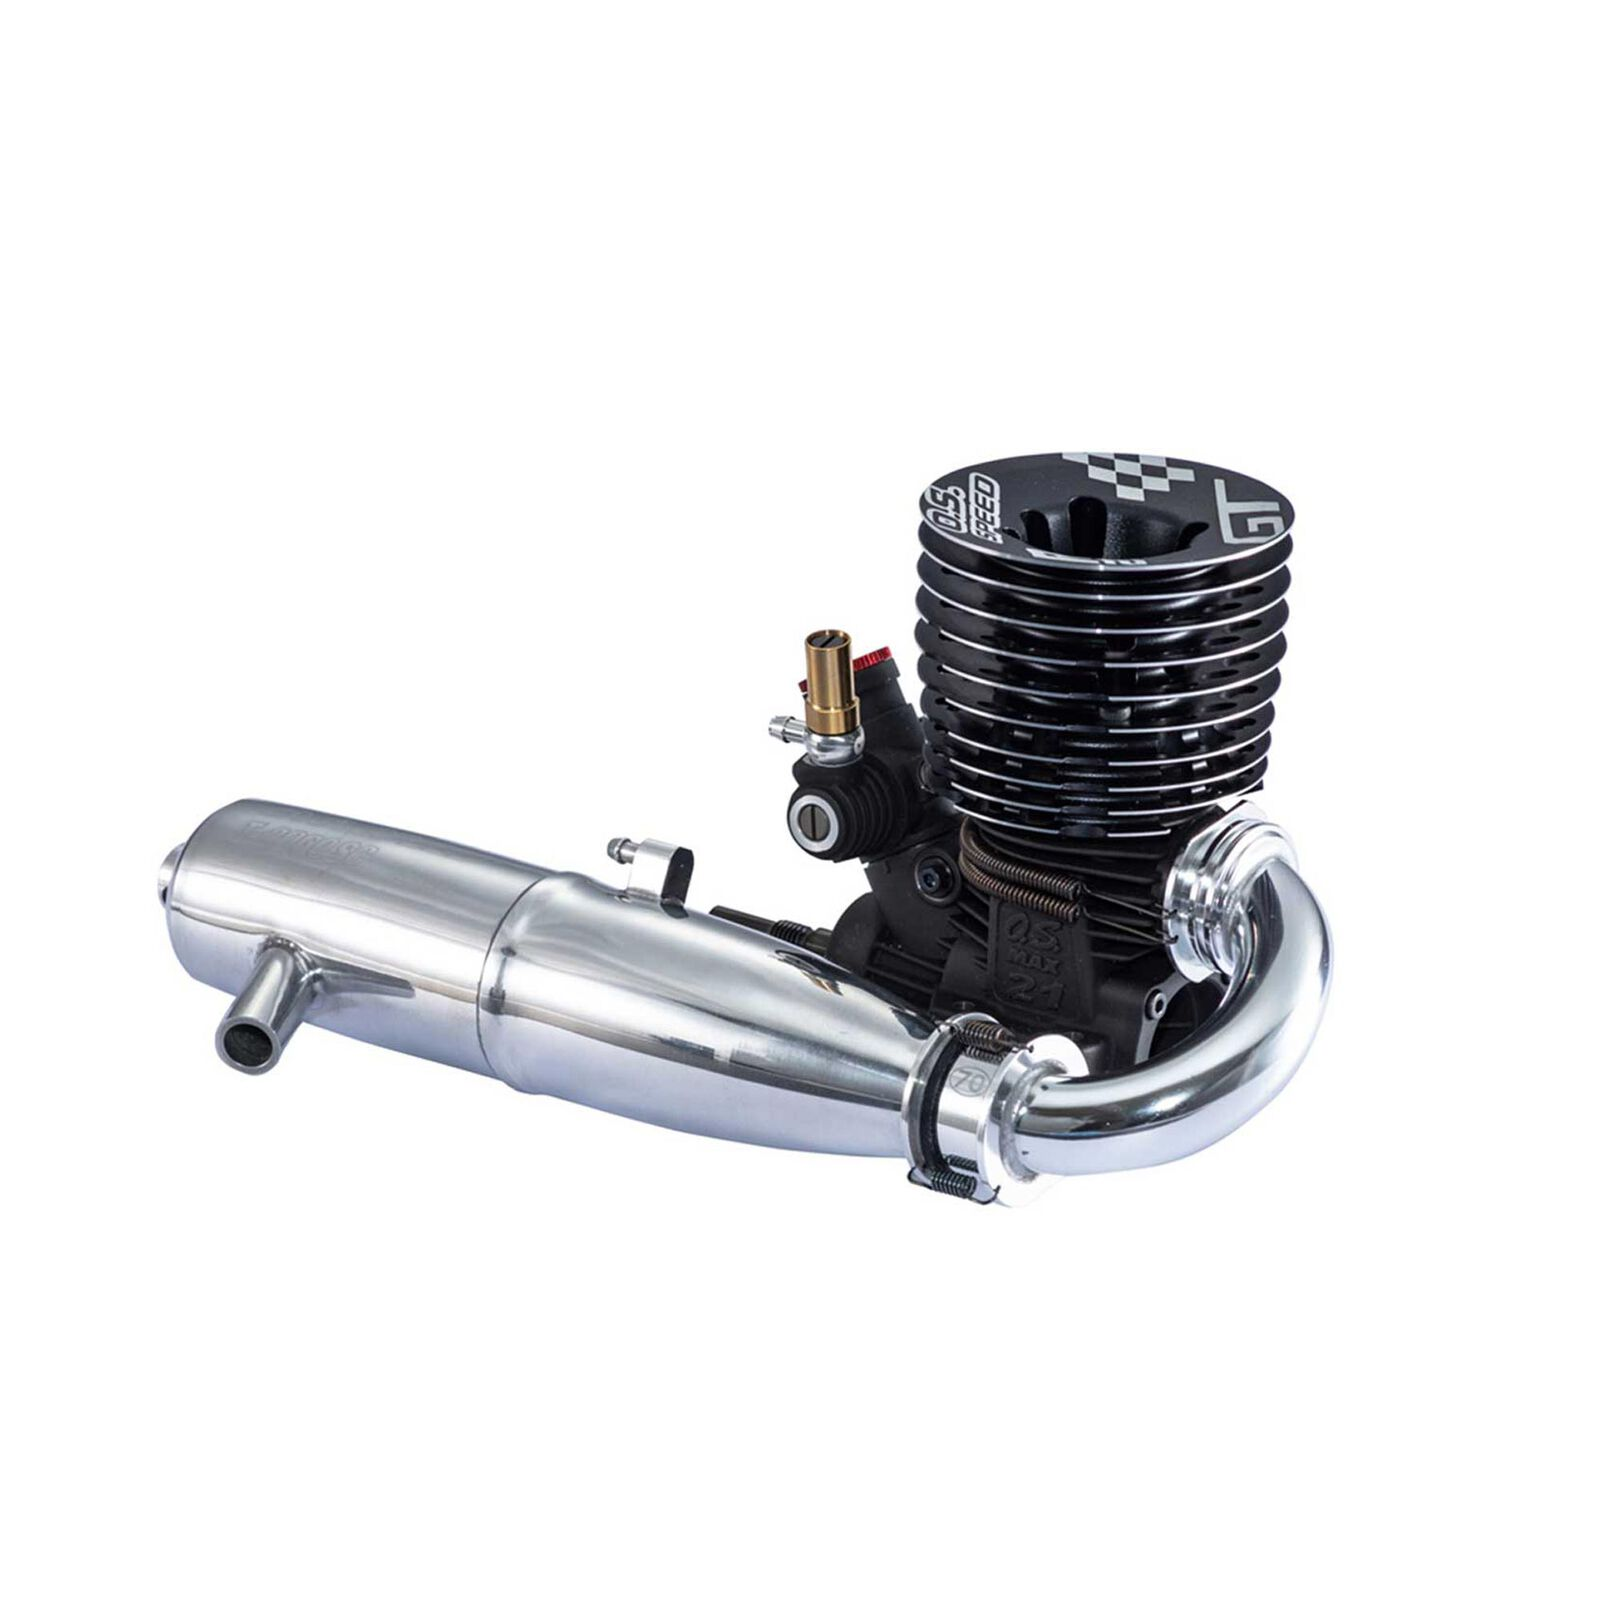 O.S. Speed R21GT 1/8 GT Engine with T-2060SC Pipe